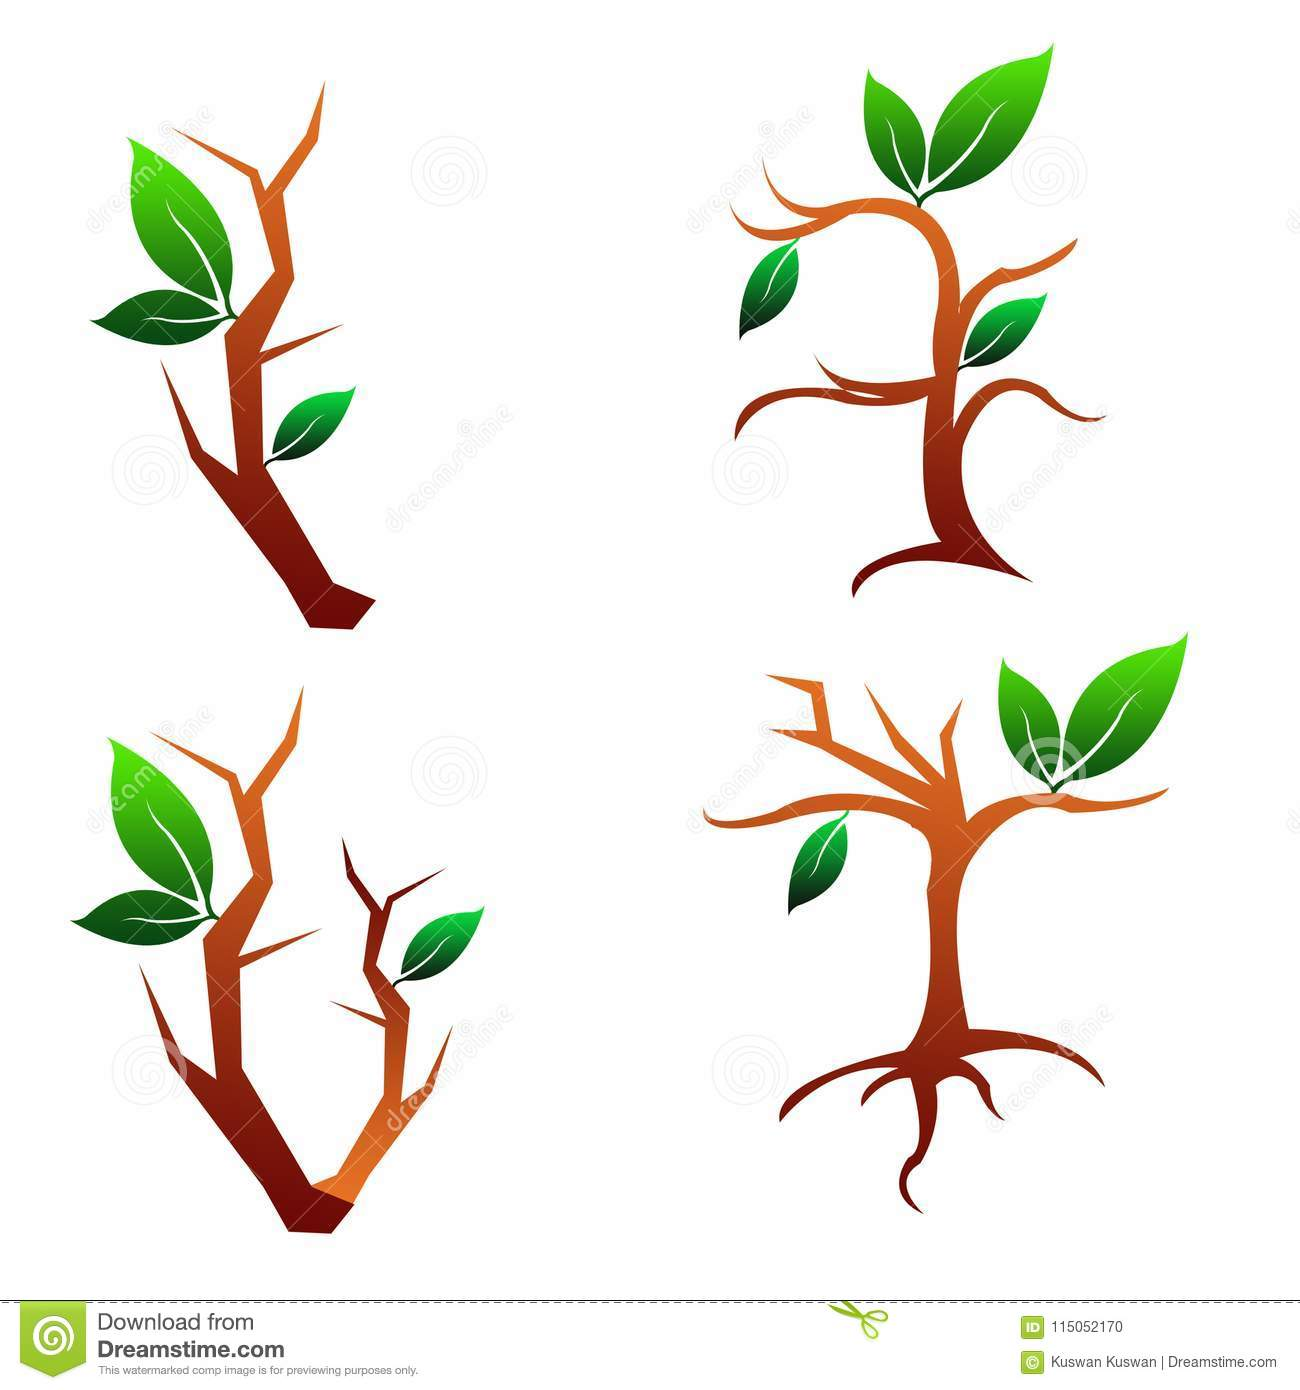 Illustration Four Tree and Leaves